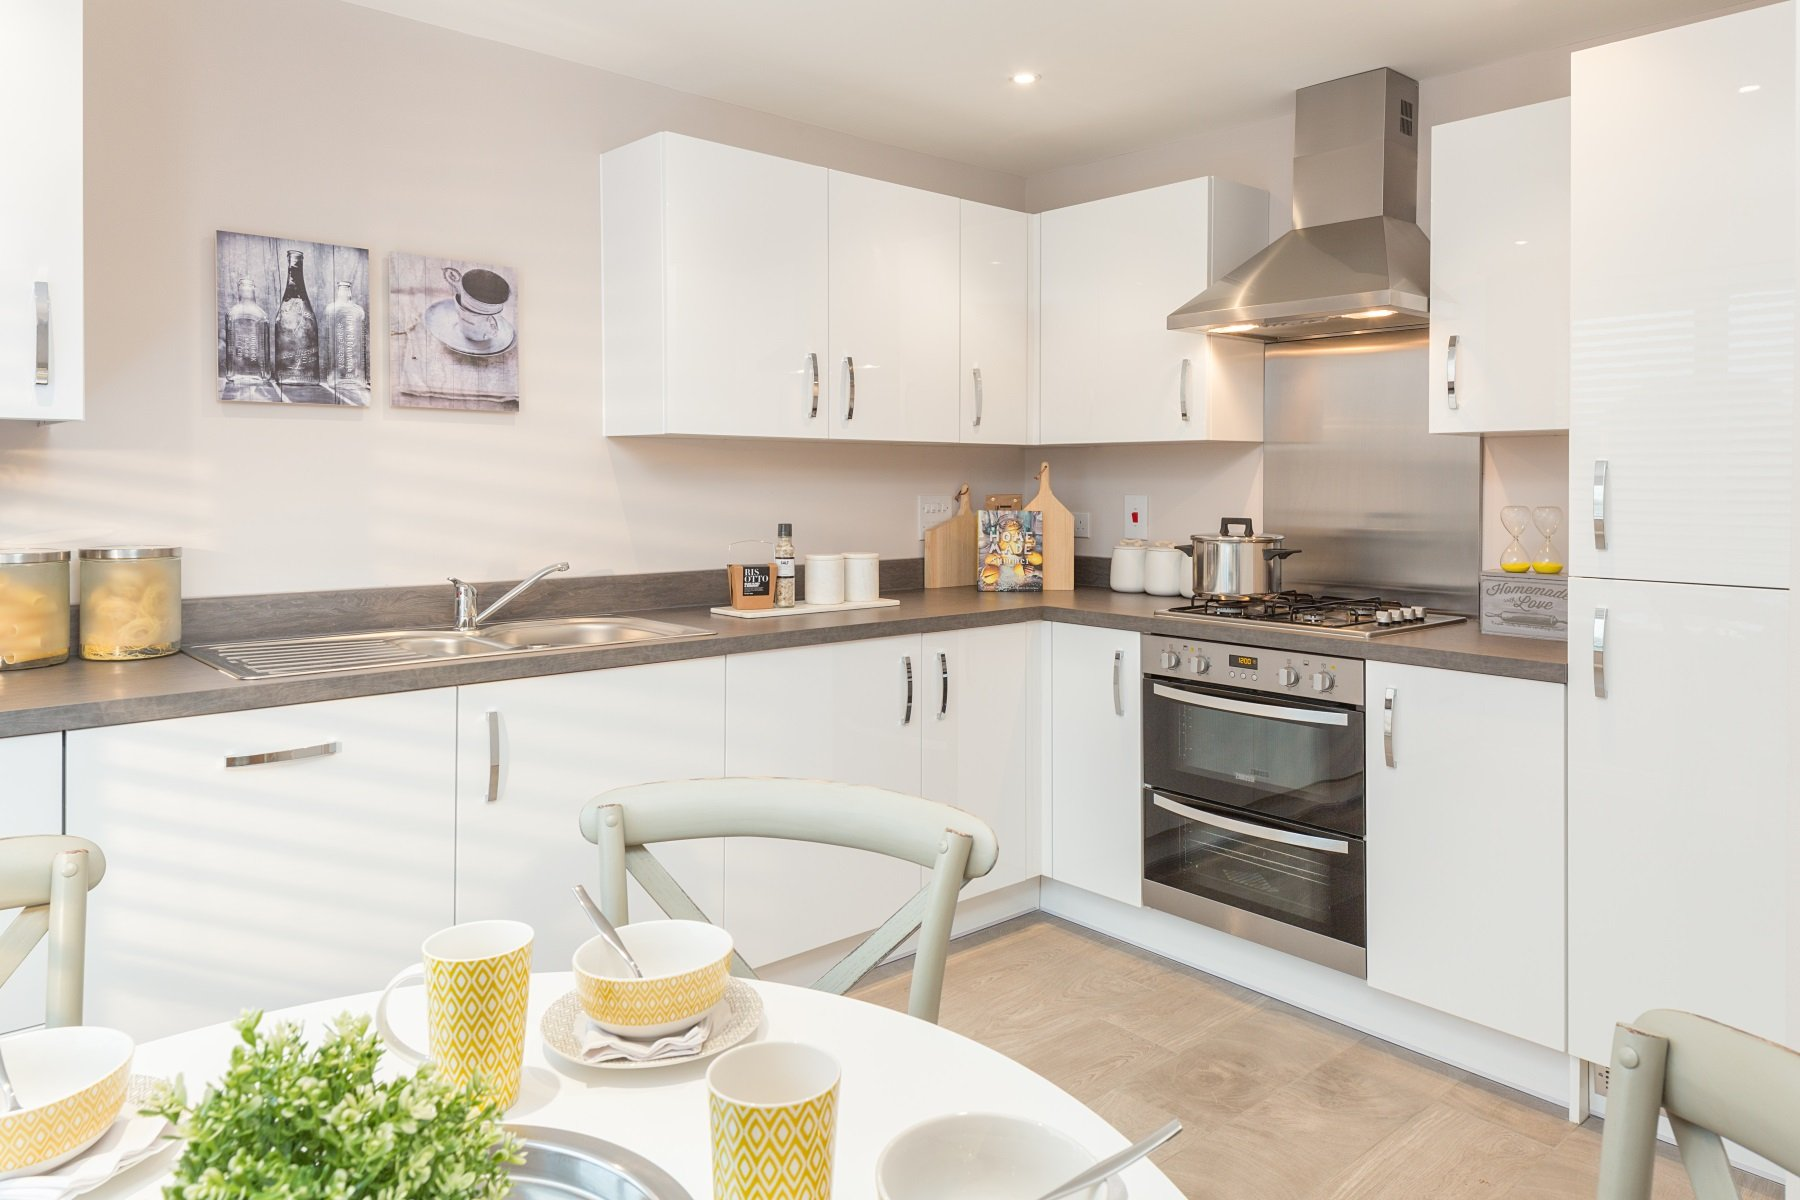 TW Exeter - Sherford - Flatford example kitchen